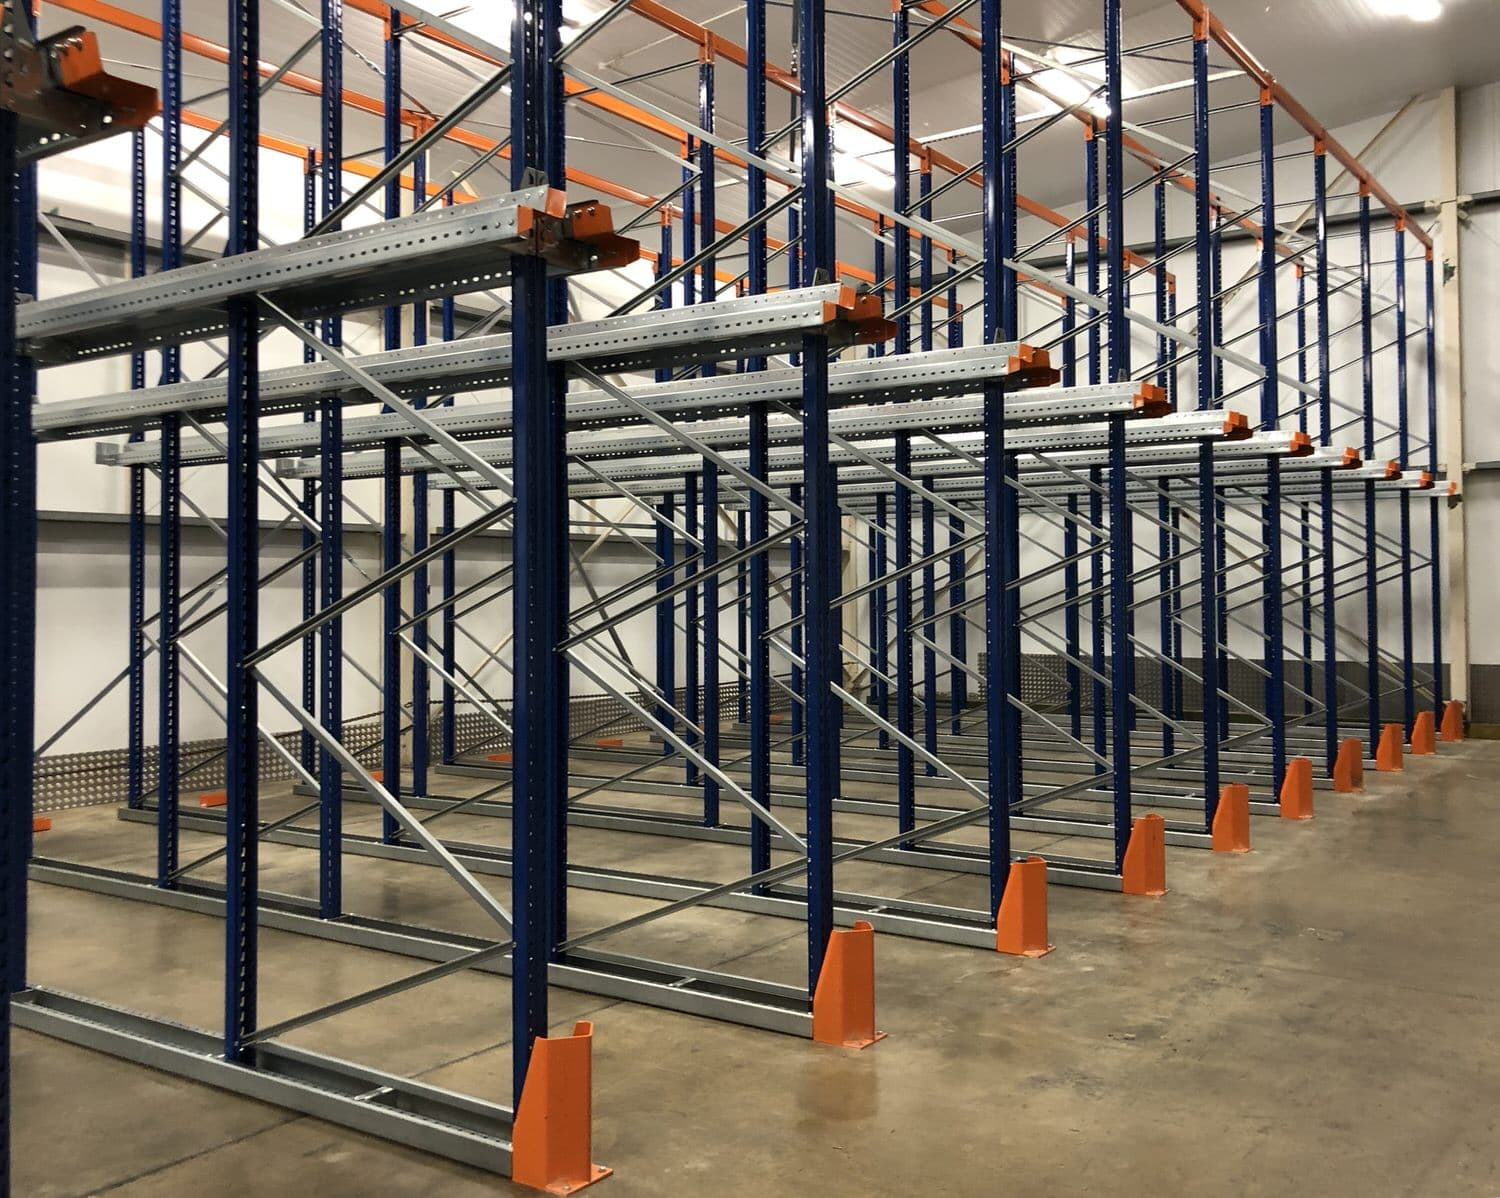 1000 New Pallet Locations for Major Fruit Supplier